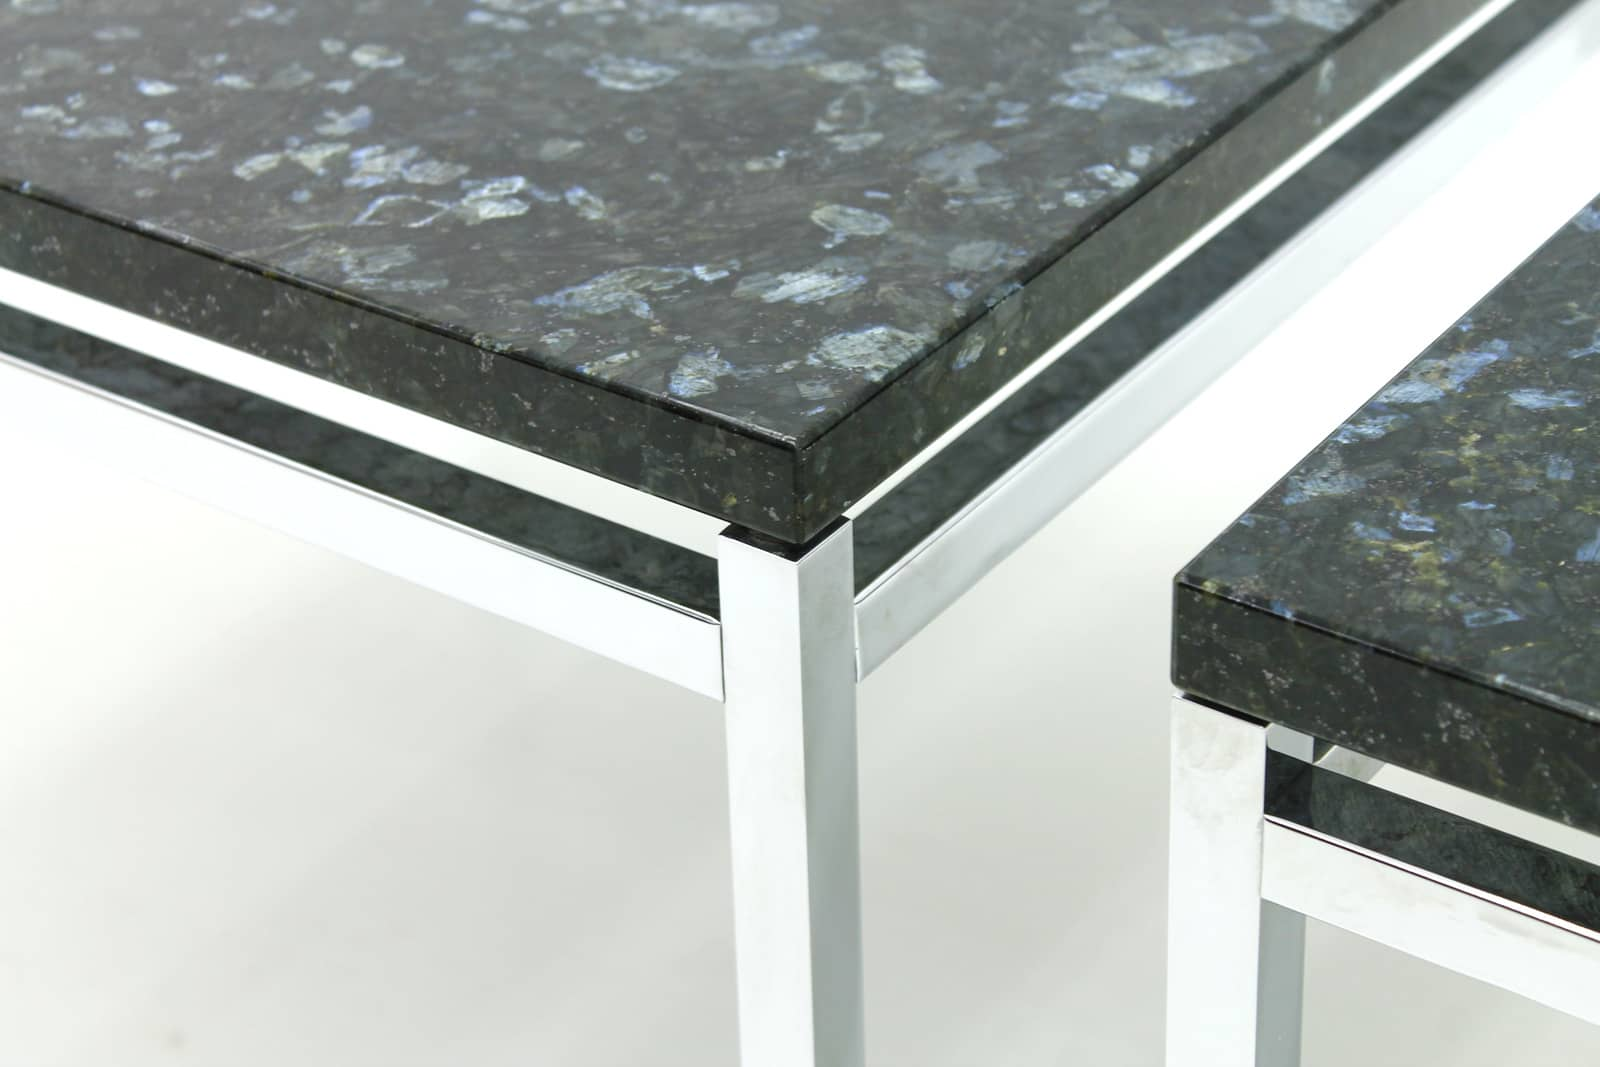 Pair of Side Tables in Labrador Granite and Steel, 1970s (t)